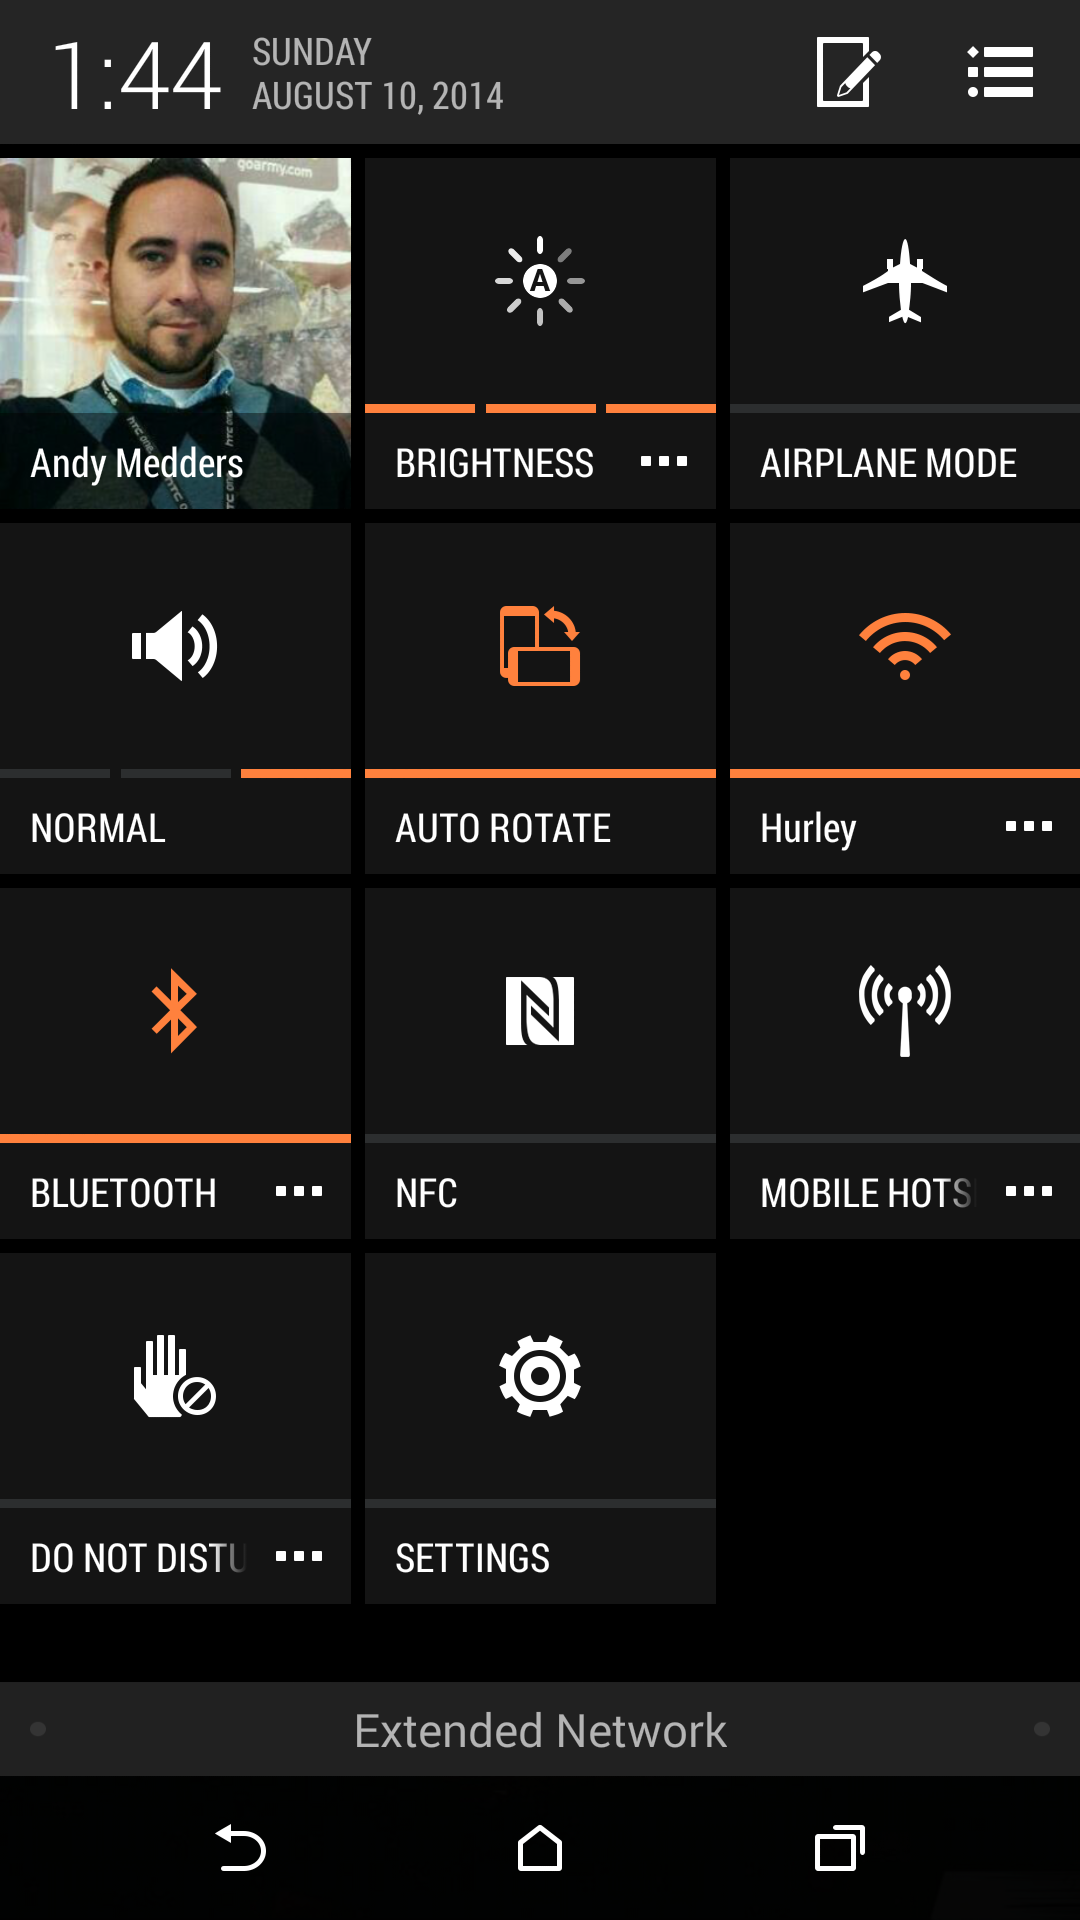 Heres What You Need To Do Change The Theme On Your HTC One M8 Or Other Device Running Sense 5 Above